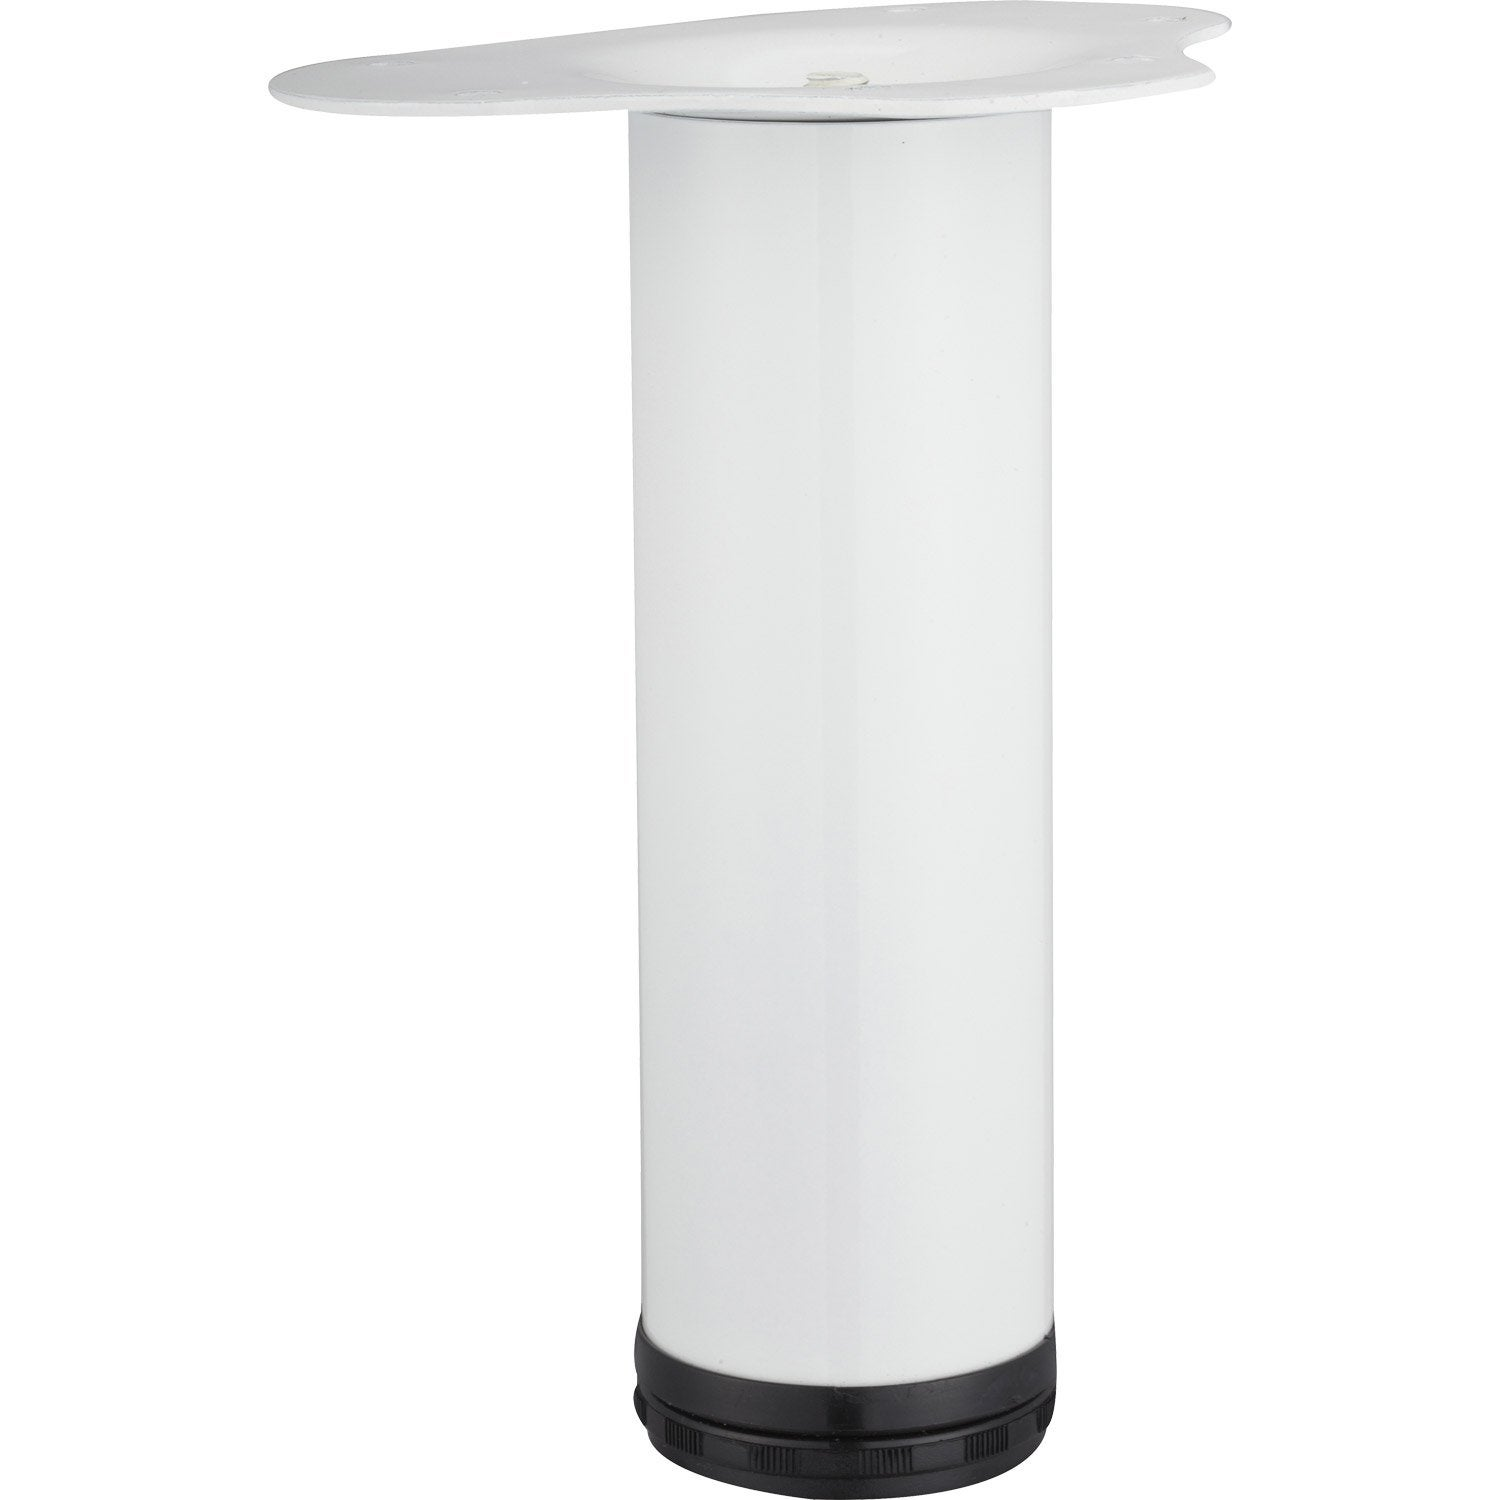 Pied de table basse cylindrique r glable acier epoxy blanc - Pied de table basse leroy merlin ...